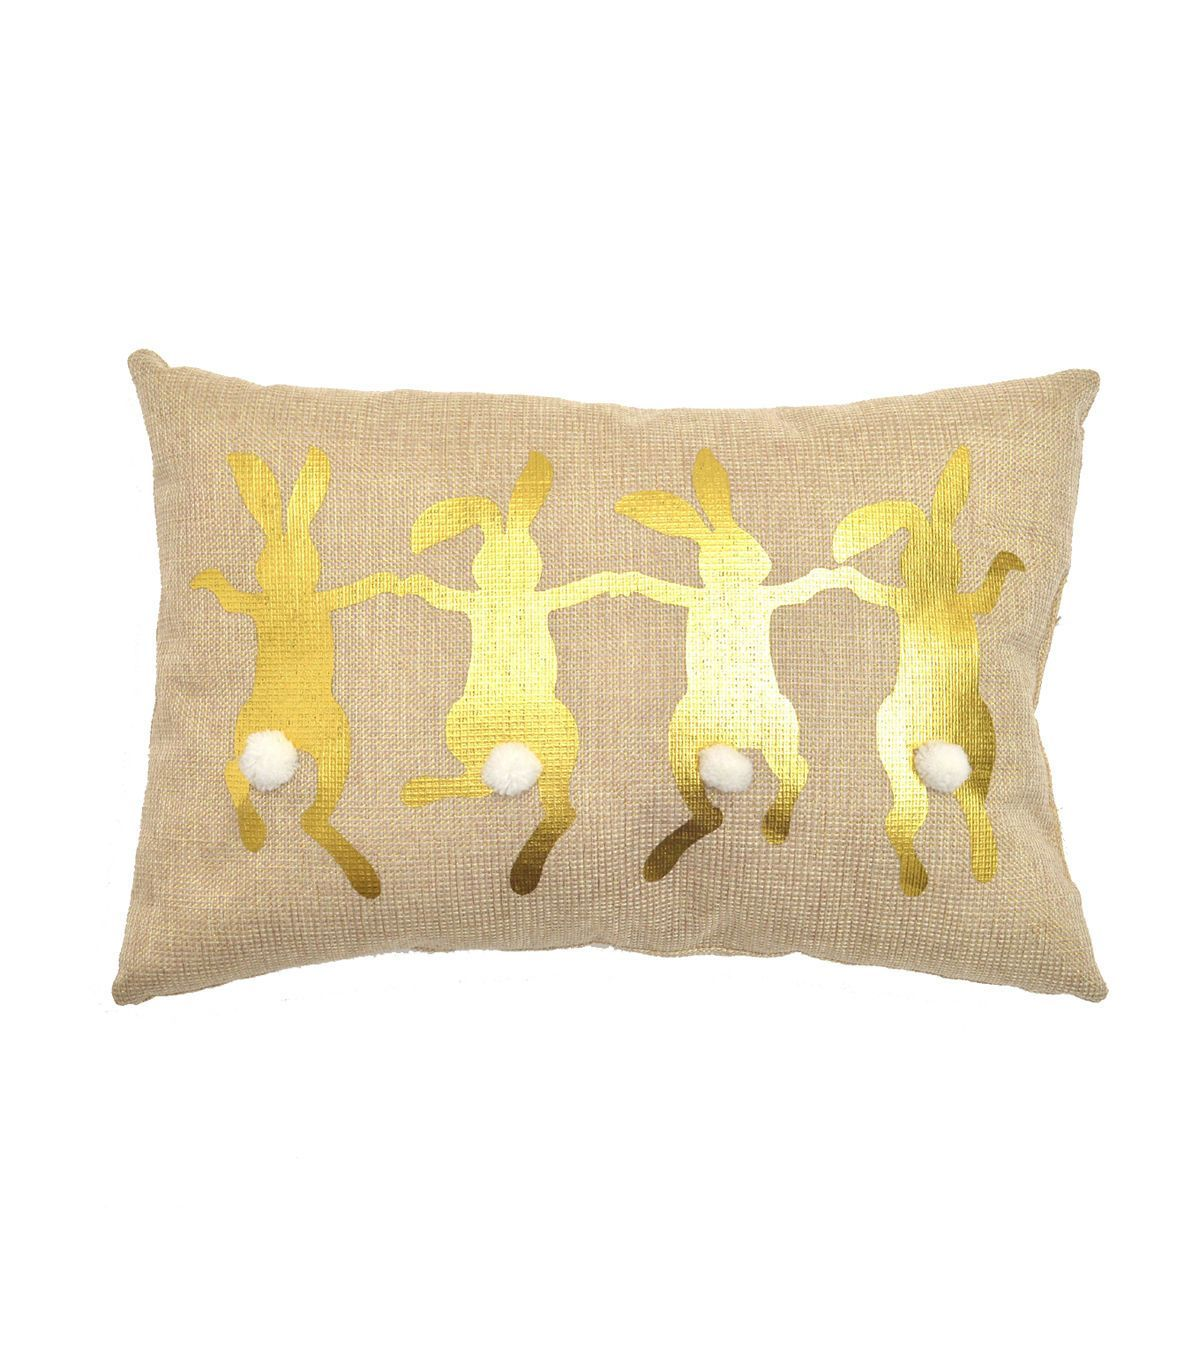 Easter Burlap Pillow Skipping Bunnies Gold Easterbunny Easter